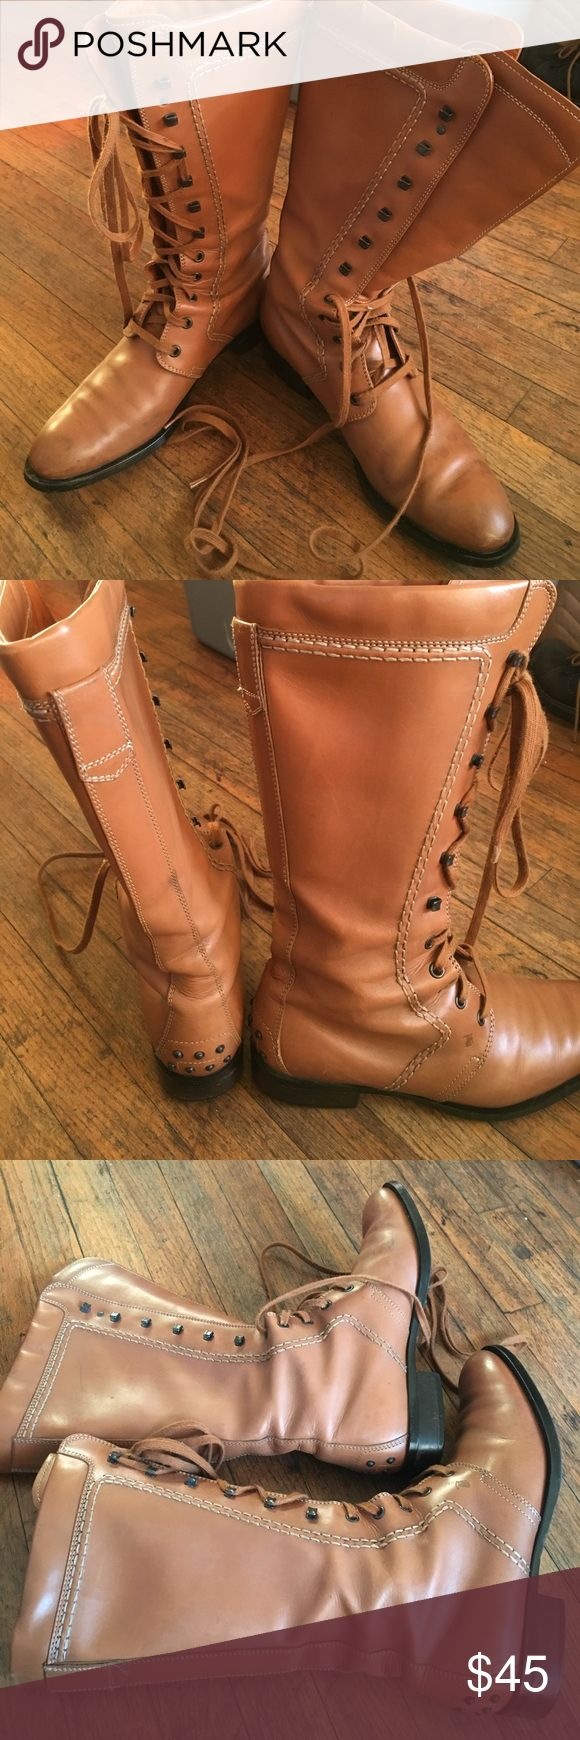 AUTHENTIC TOD'S RIDING BOOTS CAMEL SZ 8.5 USED CONDITION SOME SPOTS ON FRONT CAN BE POLISHED LEATHER GOOD ORIGINAL LACES PERFECT FOR HORSE BACK RIDING SZ 8.5 BROKEN END COMFORTABLE SEE PICS! TODS Shoes Combat & Moto Boots